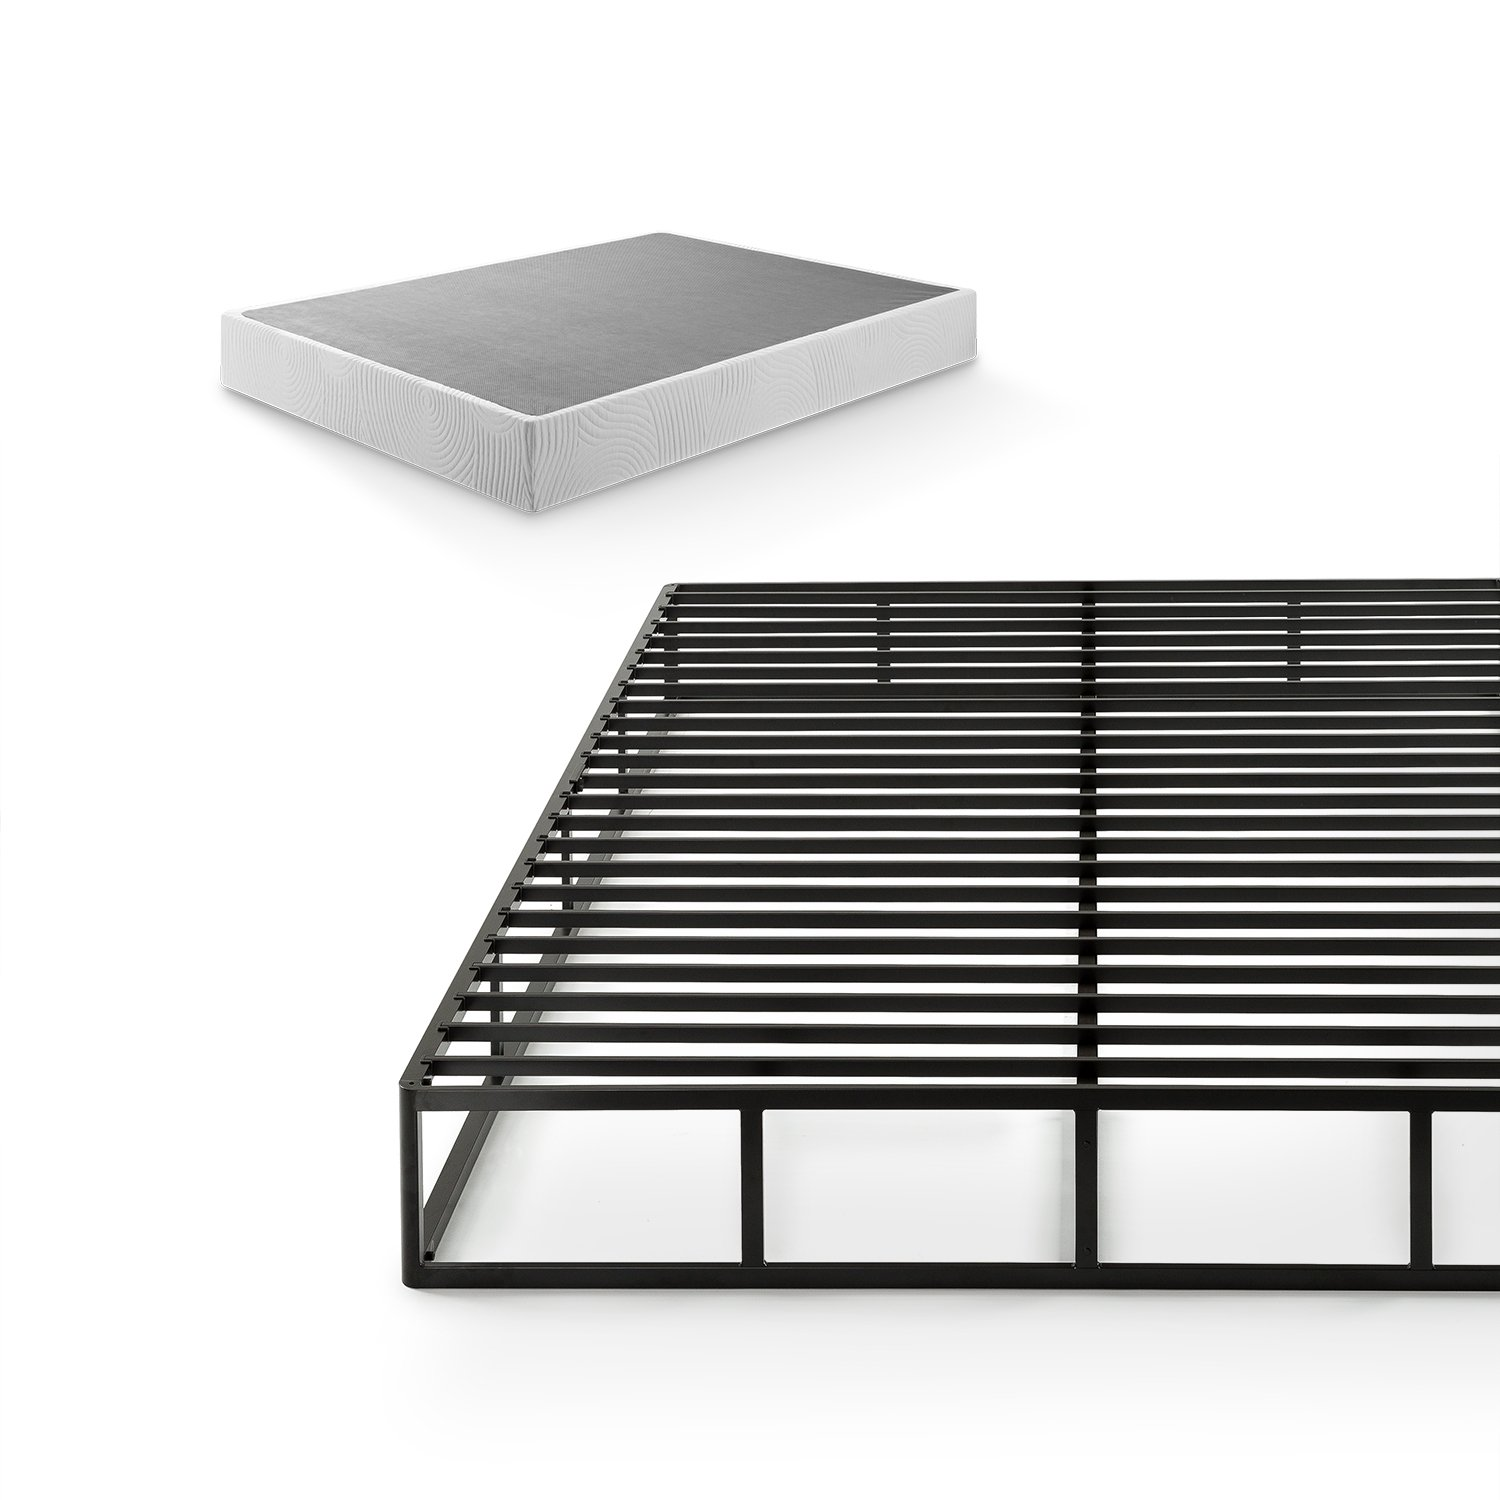 Zinus Victor 9 Inch Quick Lock High Profile Smart Box Spring / Mattress Foundation / Strong Steel Structure / Easy Assembly, King by Zinus